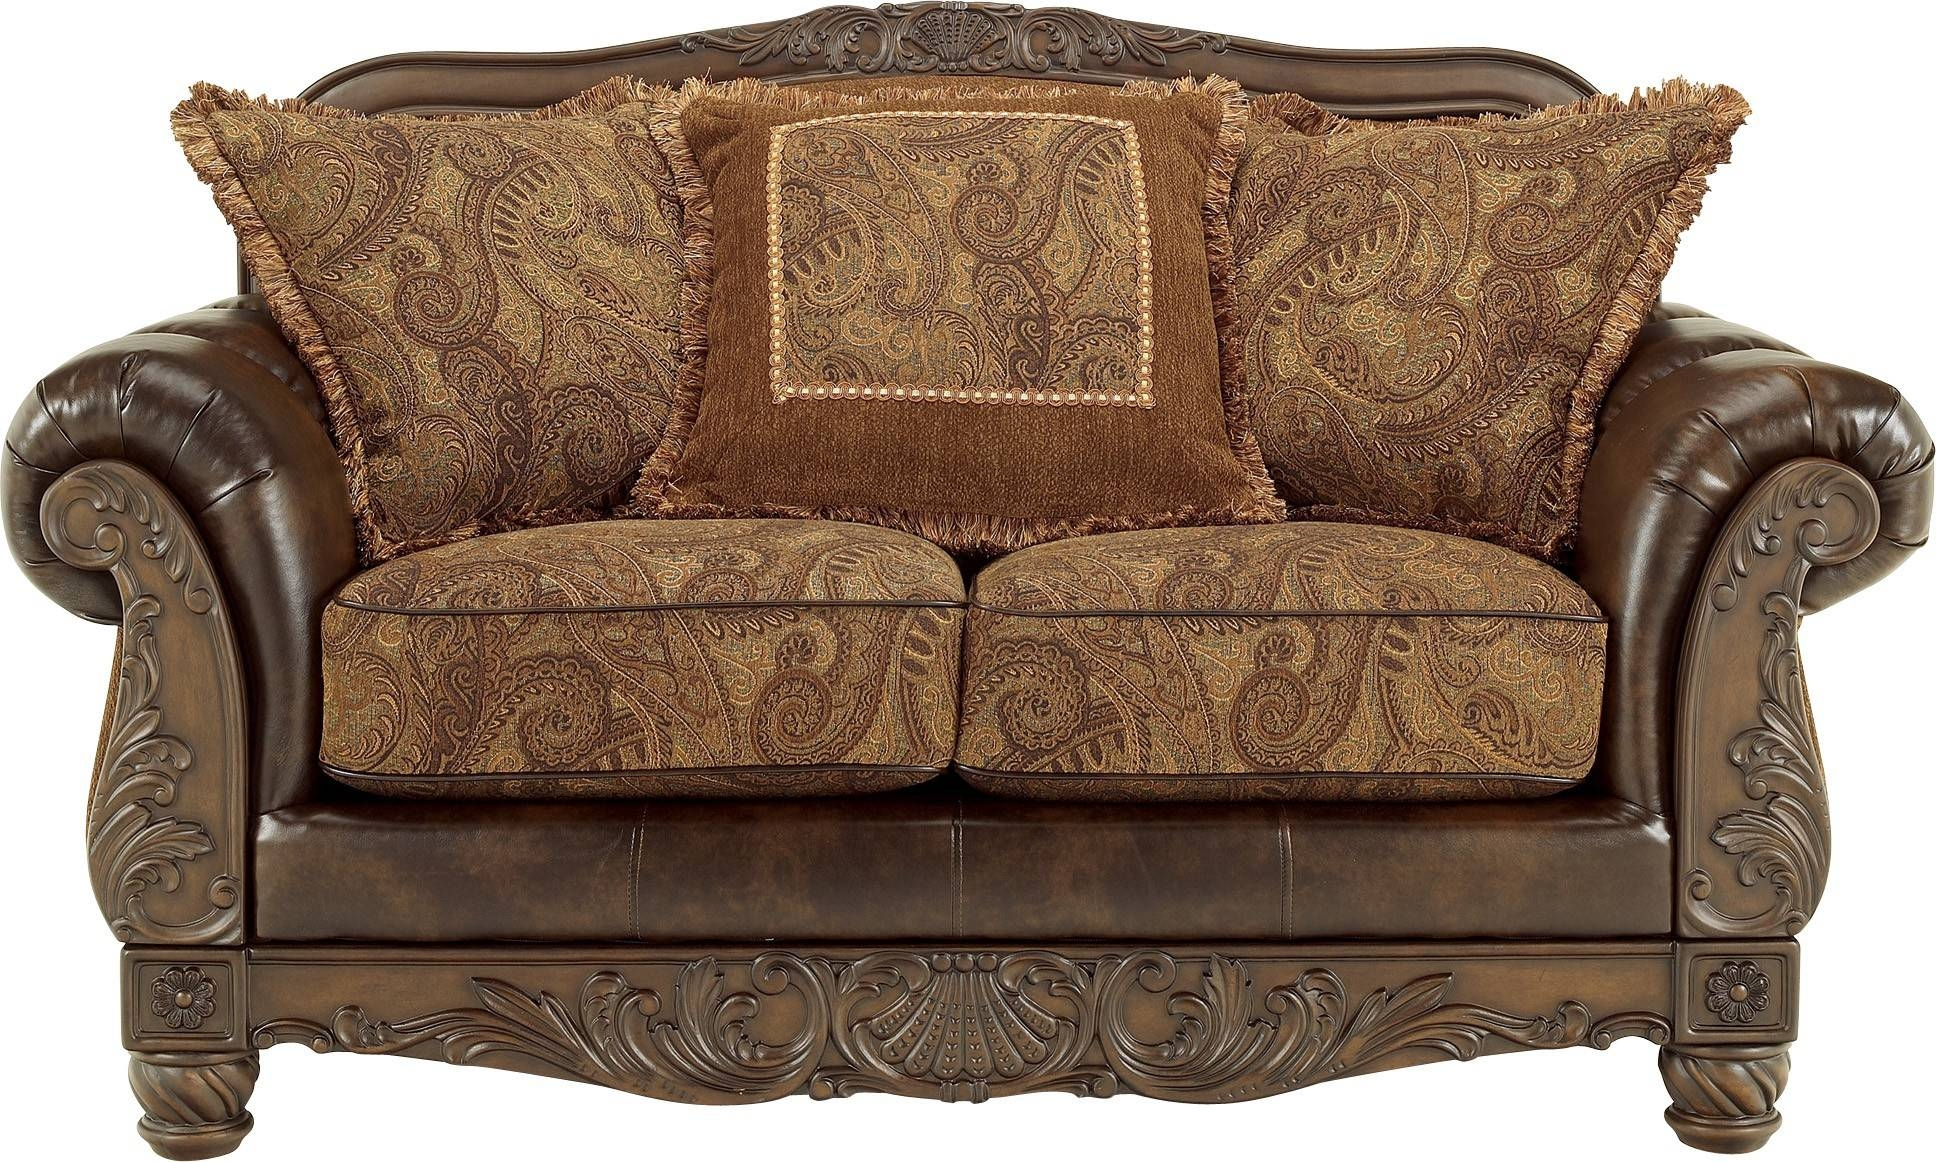 Fresco Durablend - Antique Loveseatashley Furniture inside Antique Sofa Chairs (Image 12 of 30)